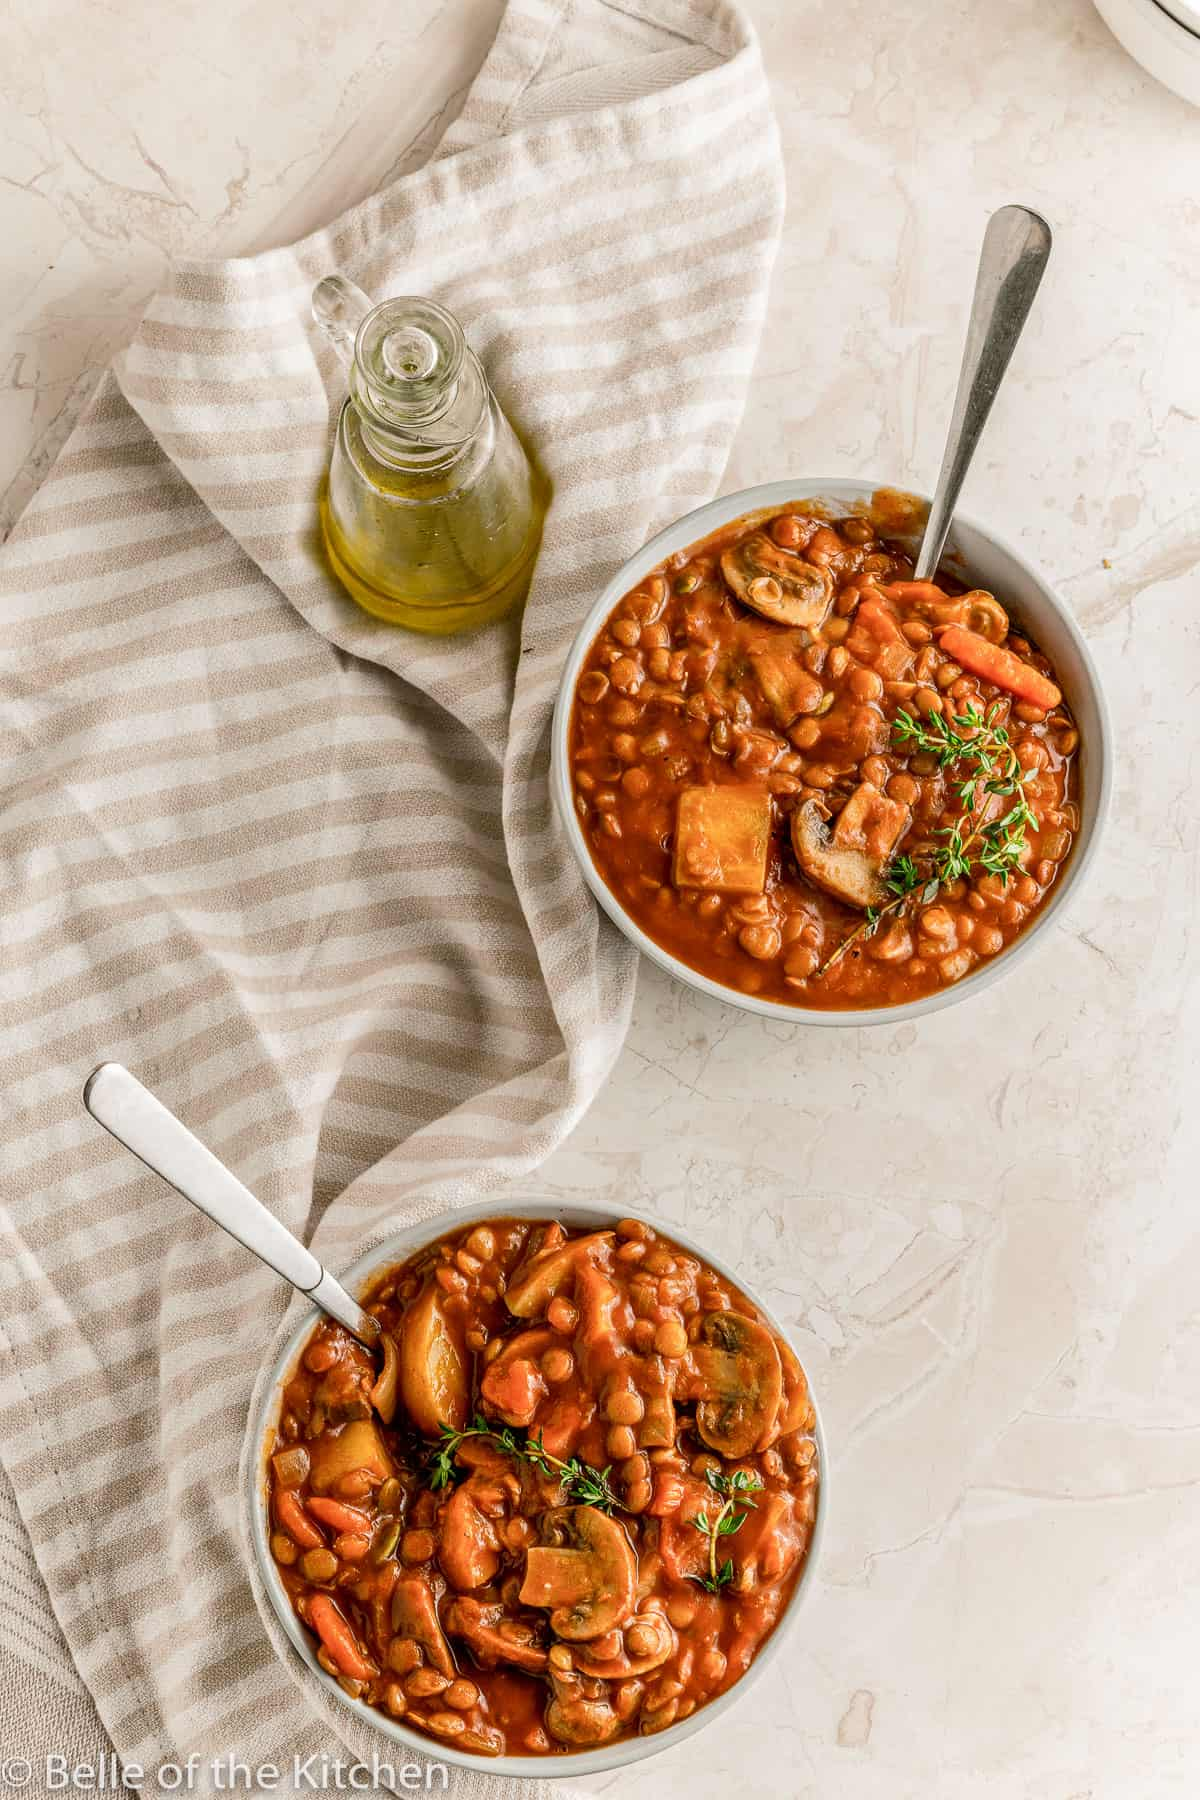 two bowls full of vegetable stew recipe